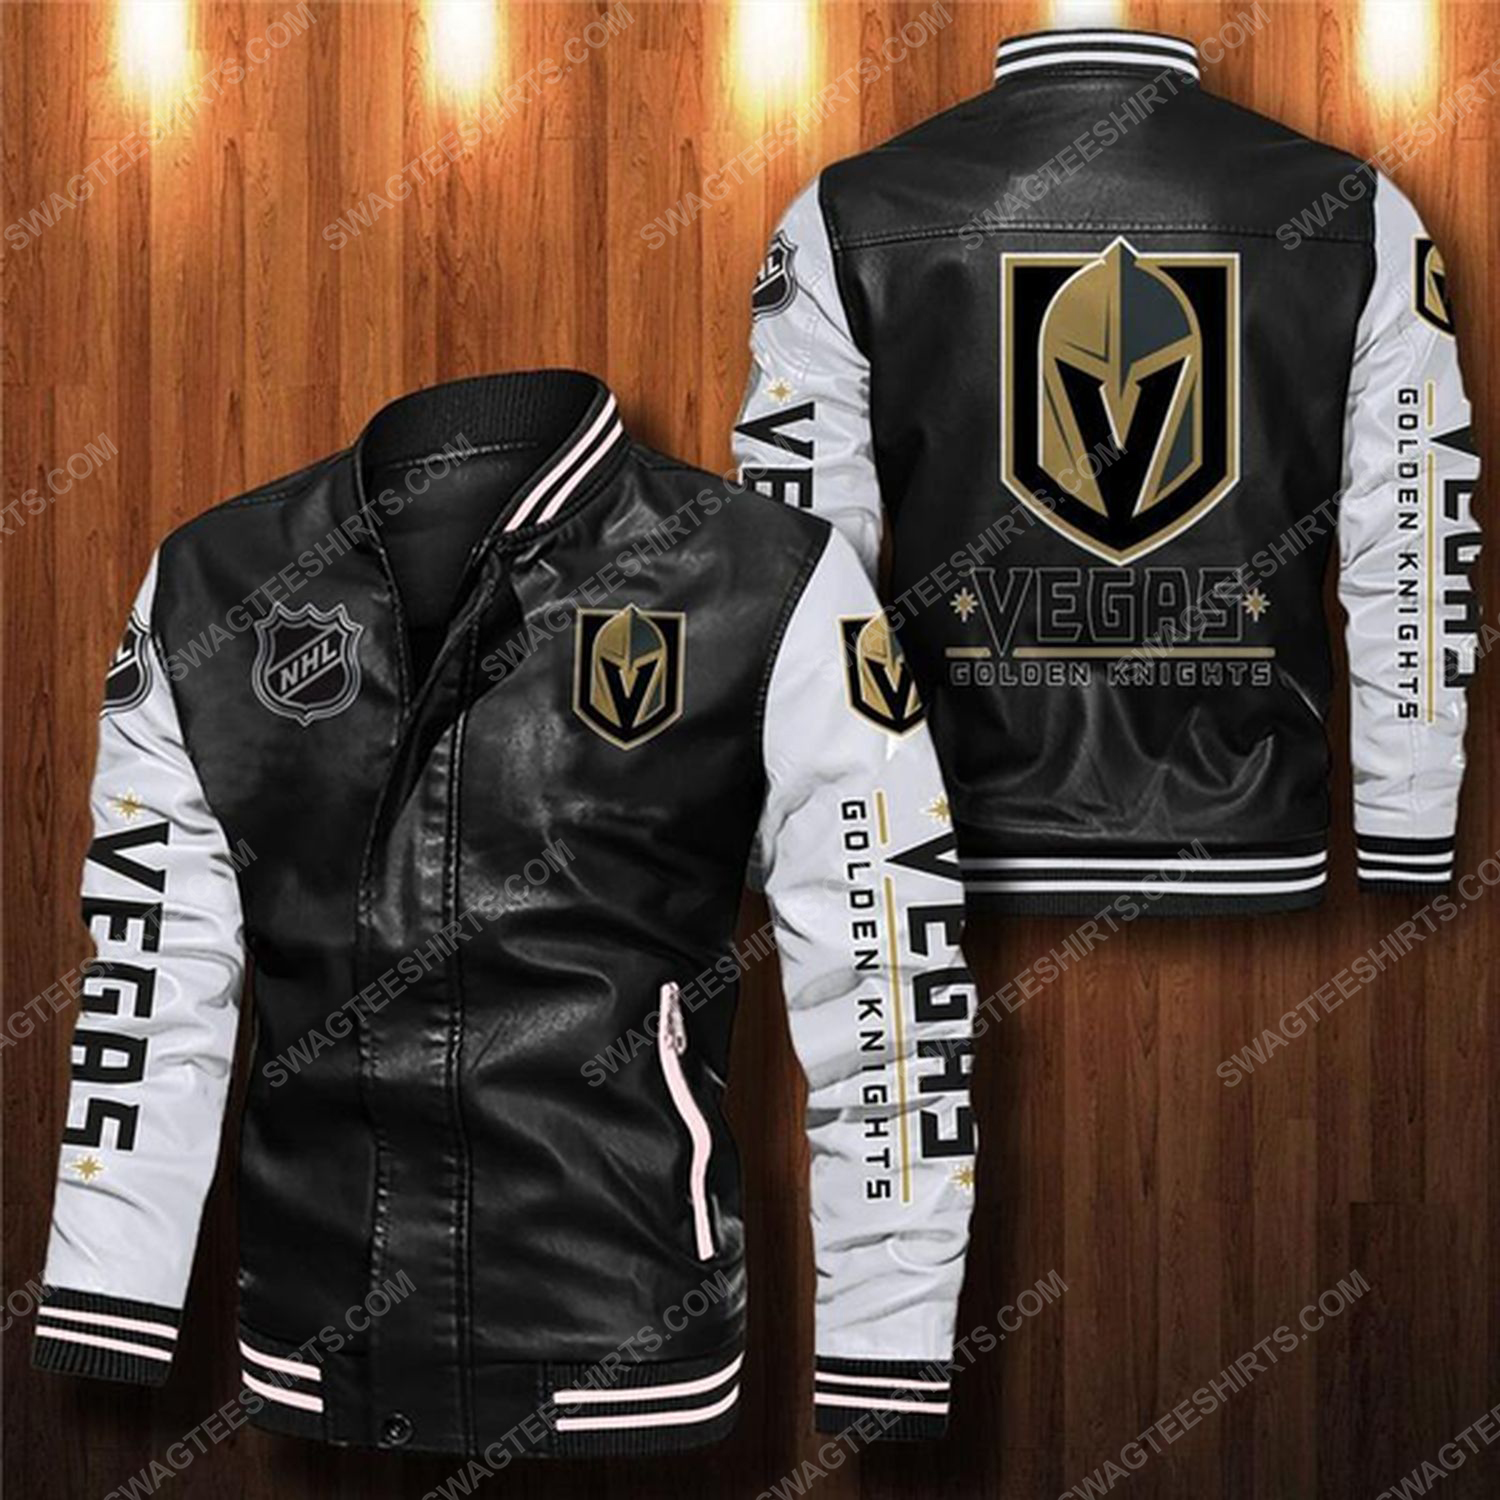 Vegas golden knights all over print leather bomber jacket - white